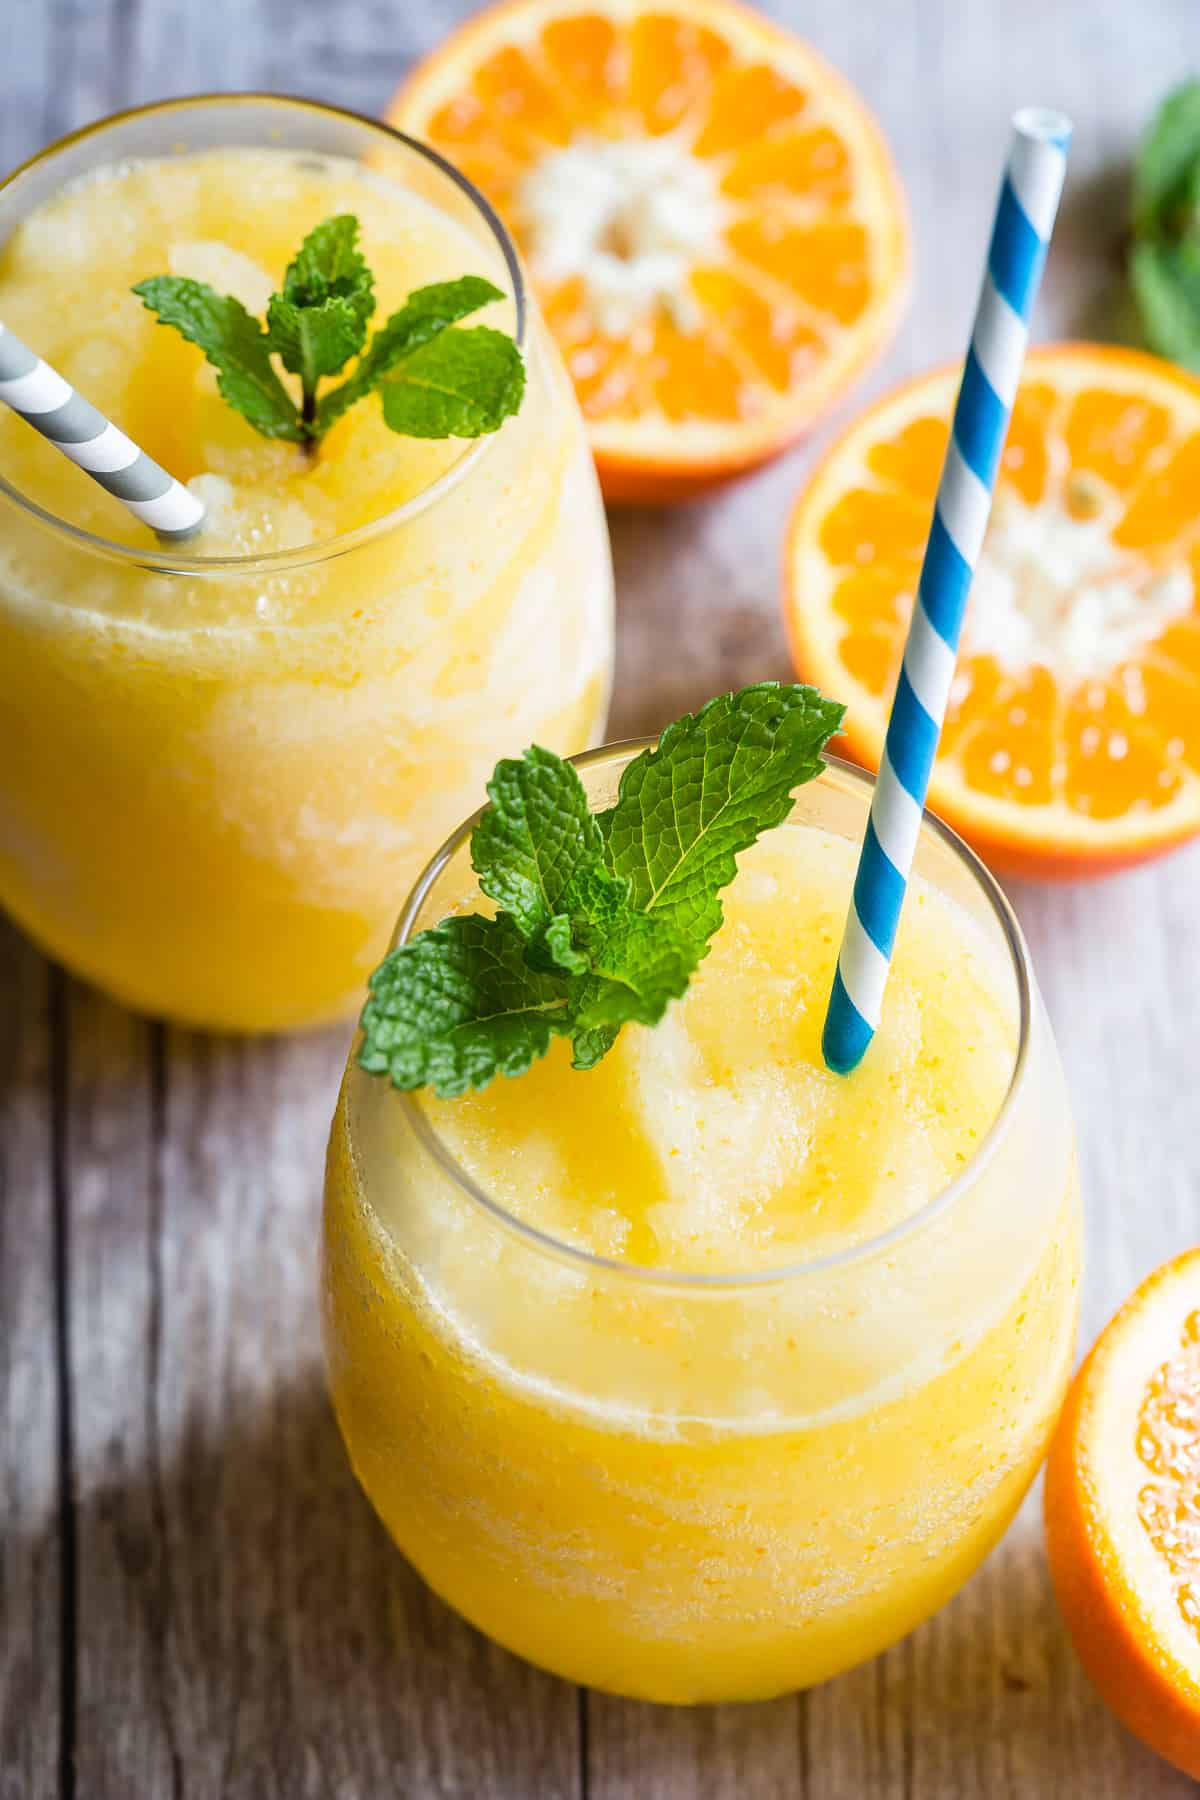 Frozen Prosecco blended into a perfect summer drink!